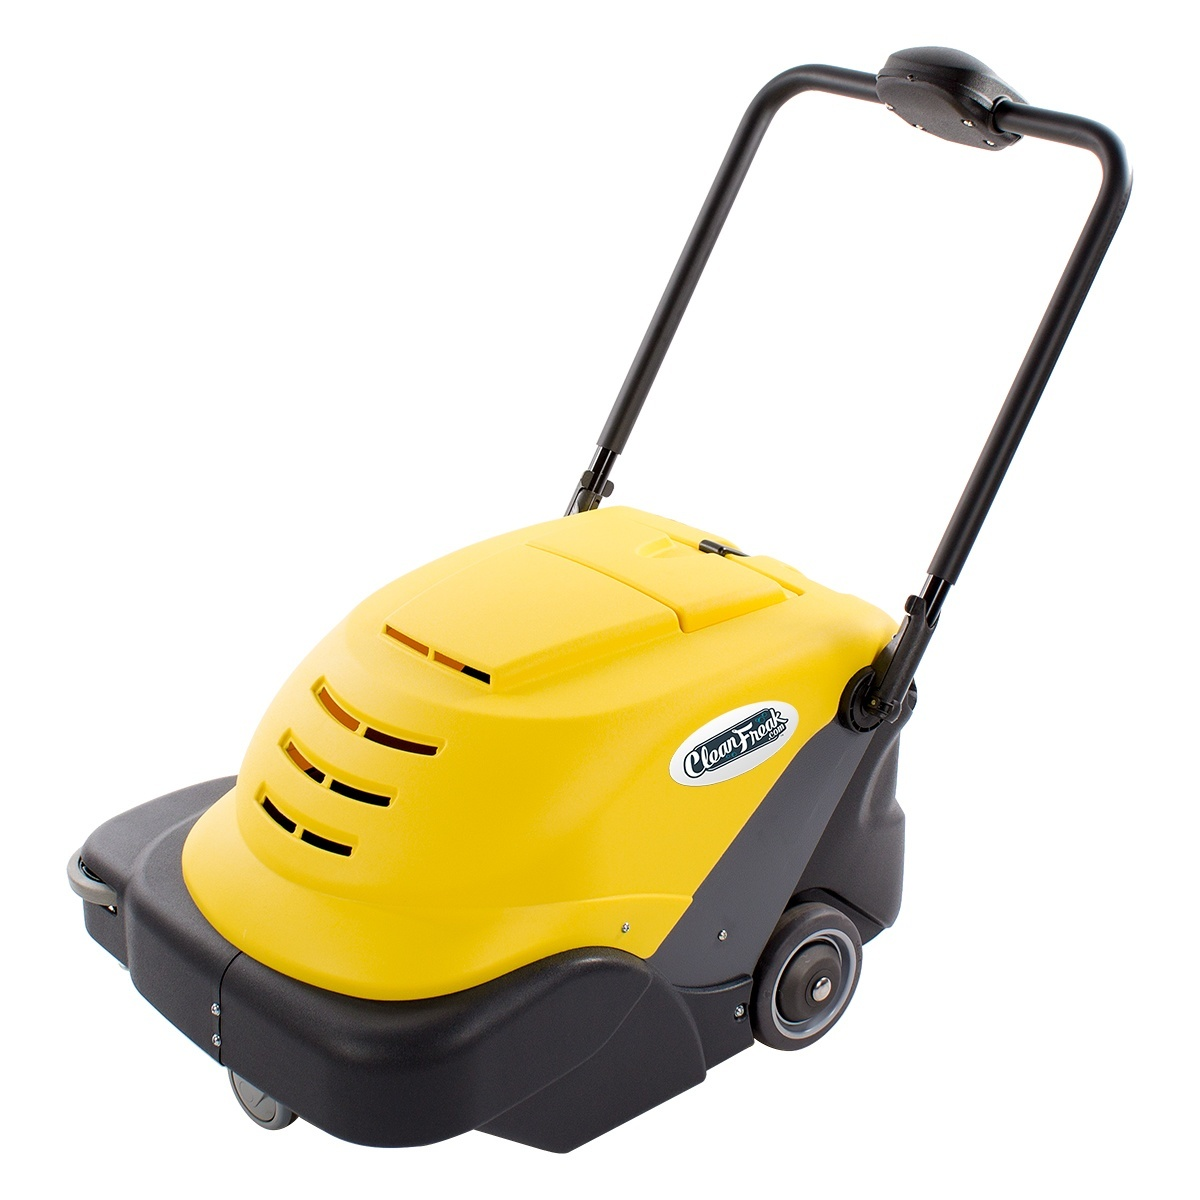 Industrial Sweepers - Small industrial floor cleaning machines